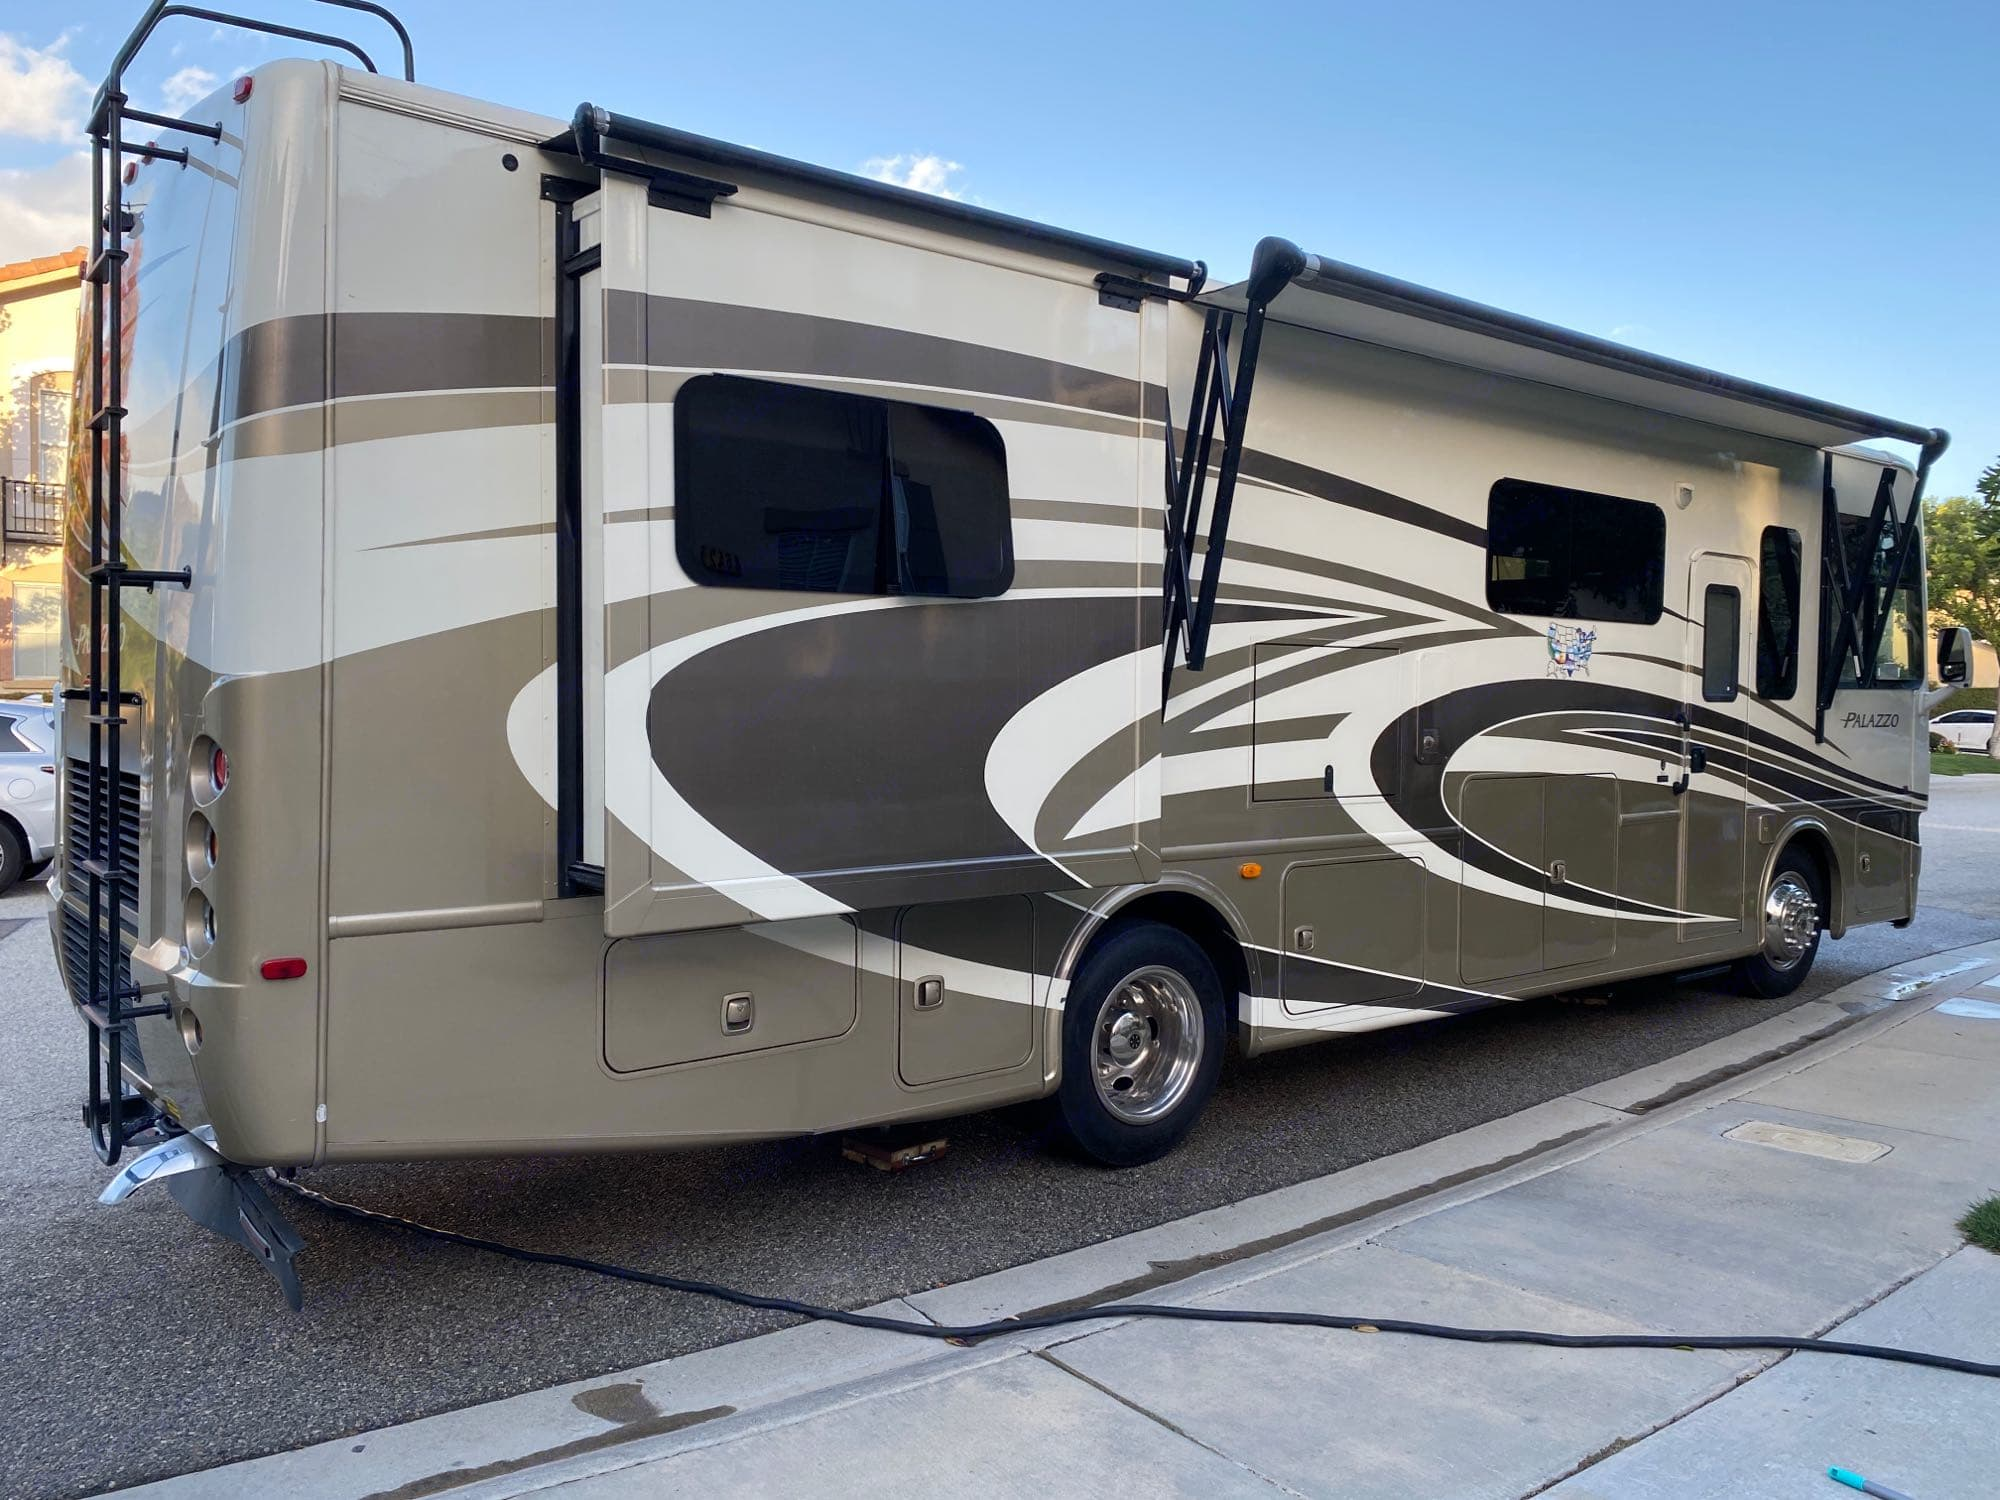 Showing one slide out and awning partially out. Thor Motor Coach Palazzo 2014